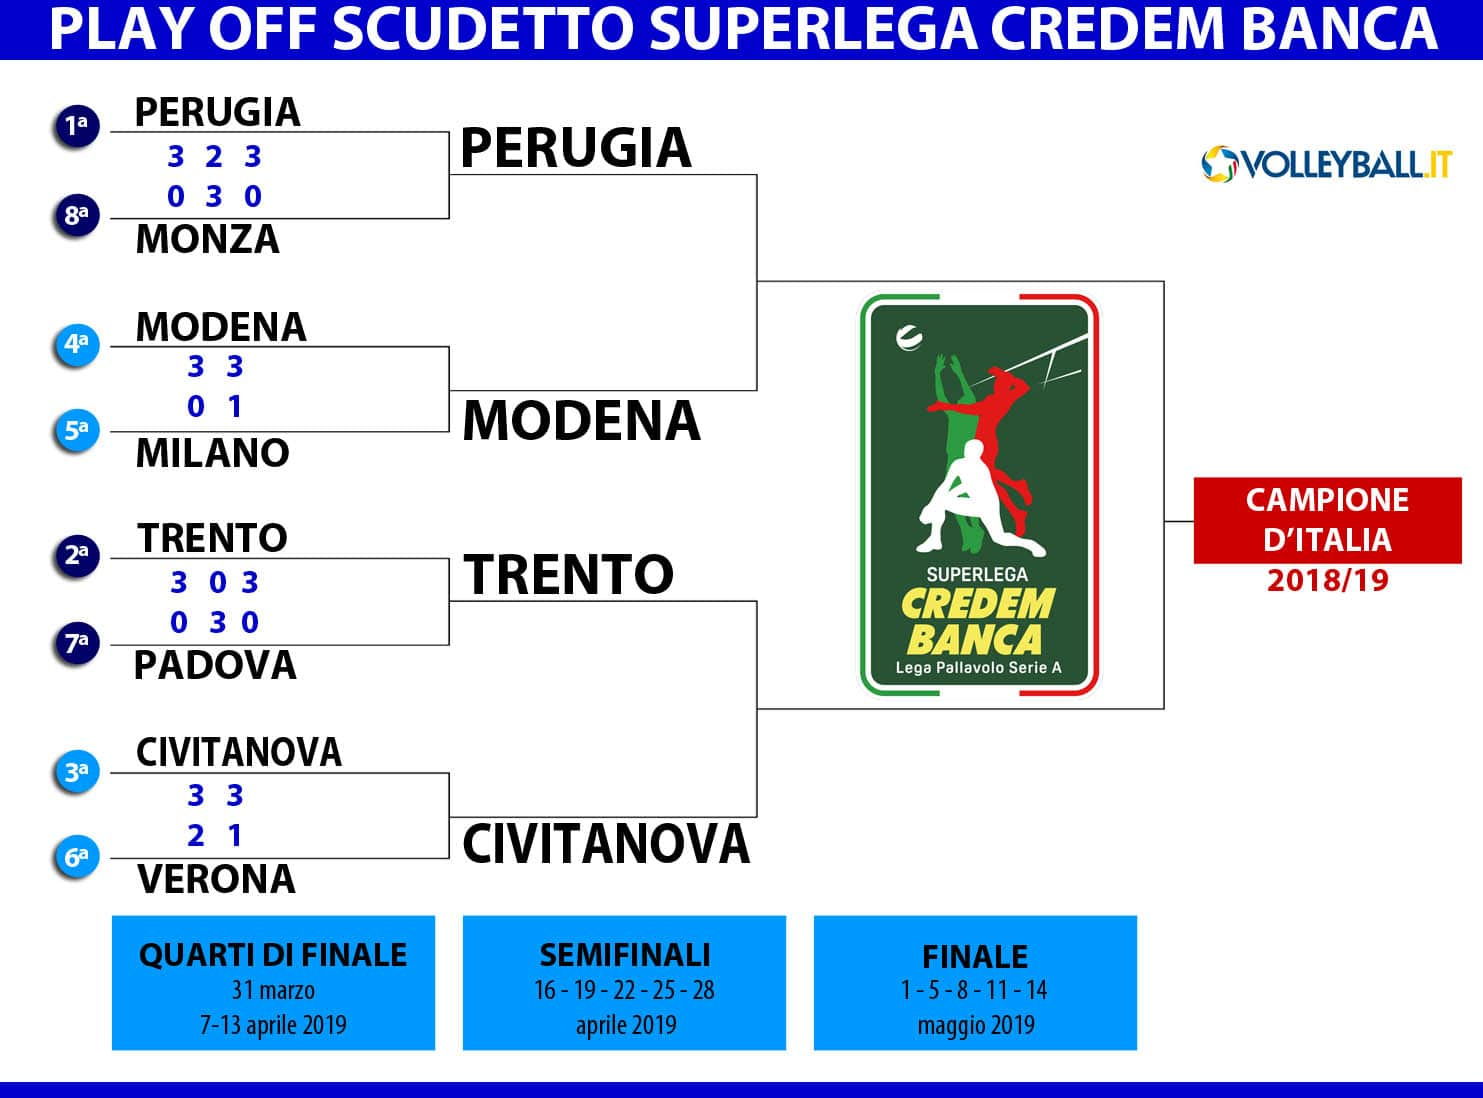 Calendario Play Off.Superlega Il Calendario Delle Semifinali Gara 1 Martedi A